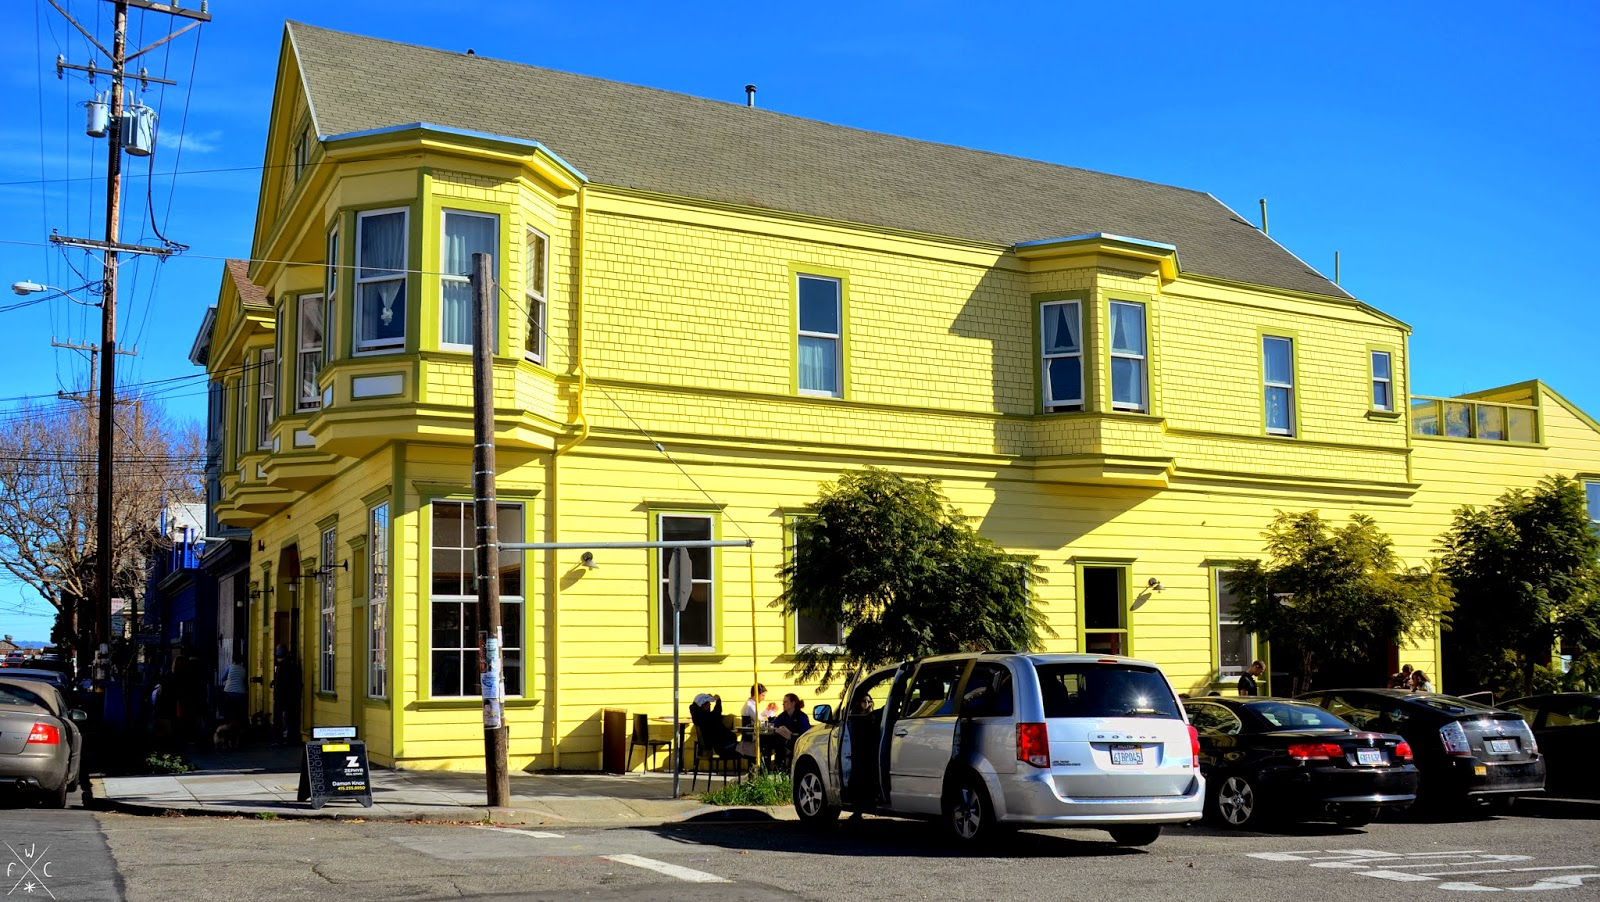 The Yellow Building - Piccino - Dogpatch, San Francisco